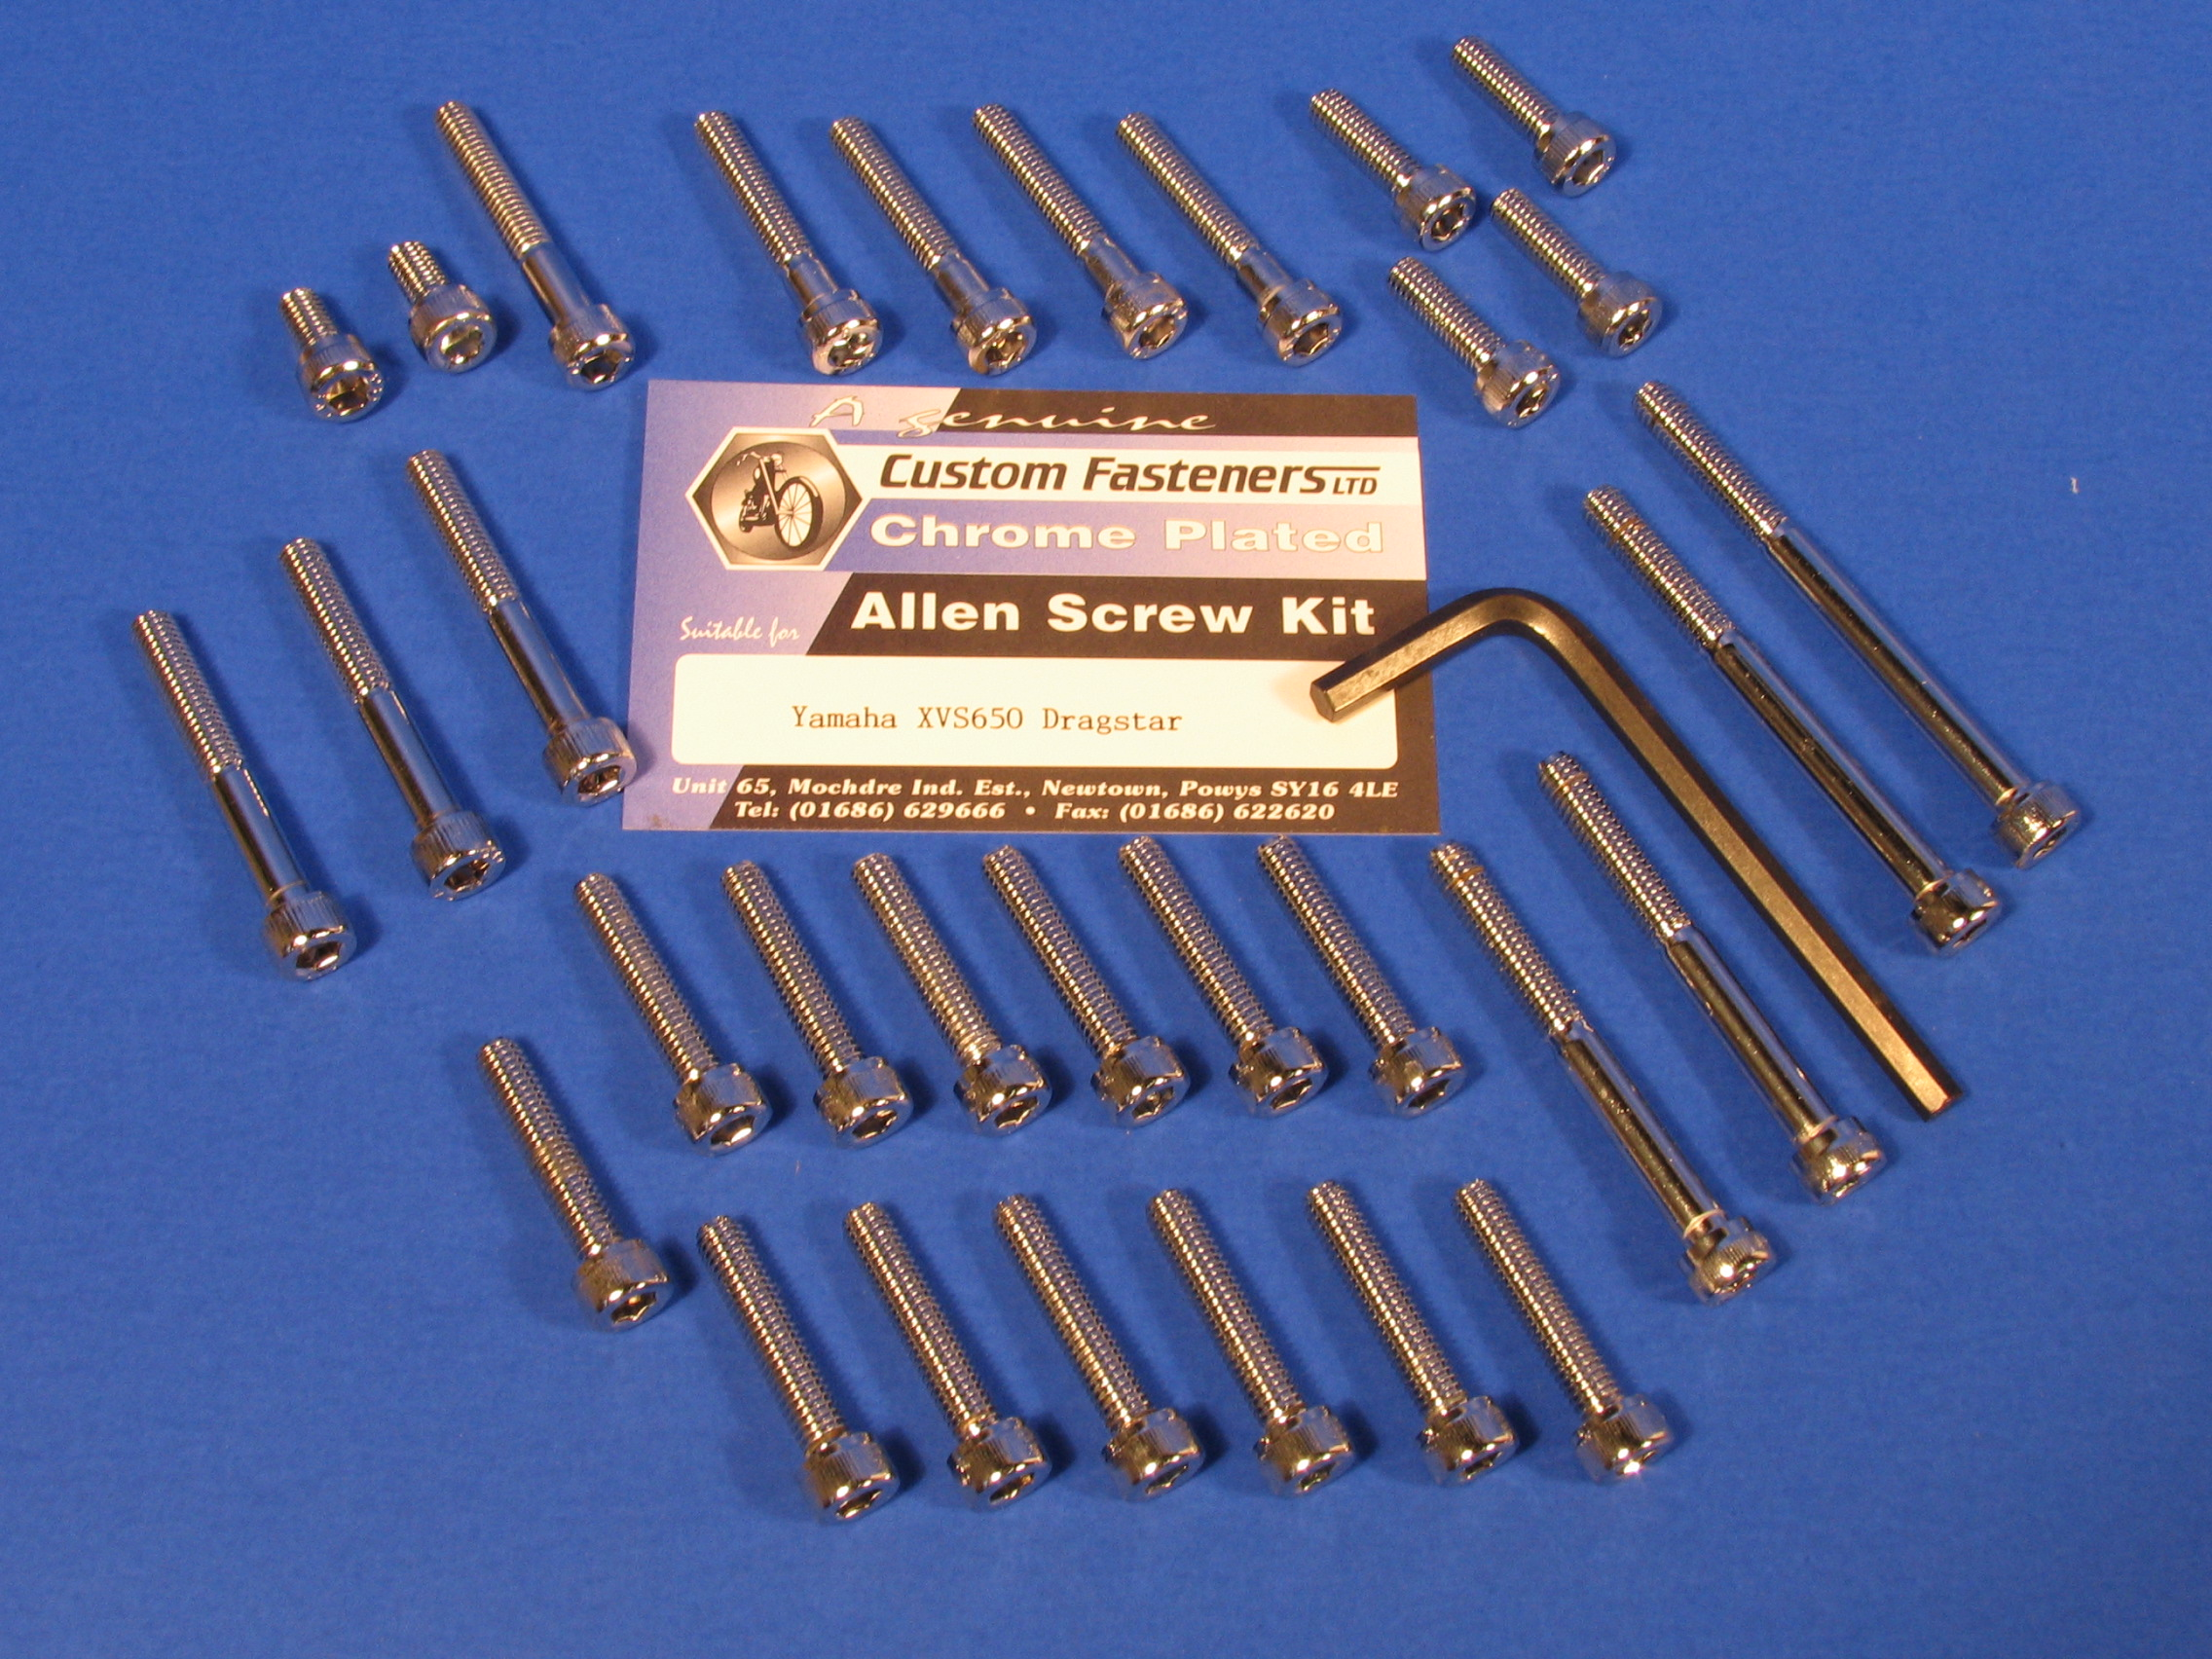 Ariel Allen Screw Kits